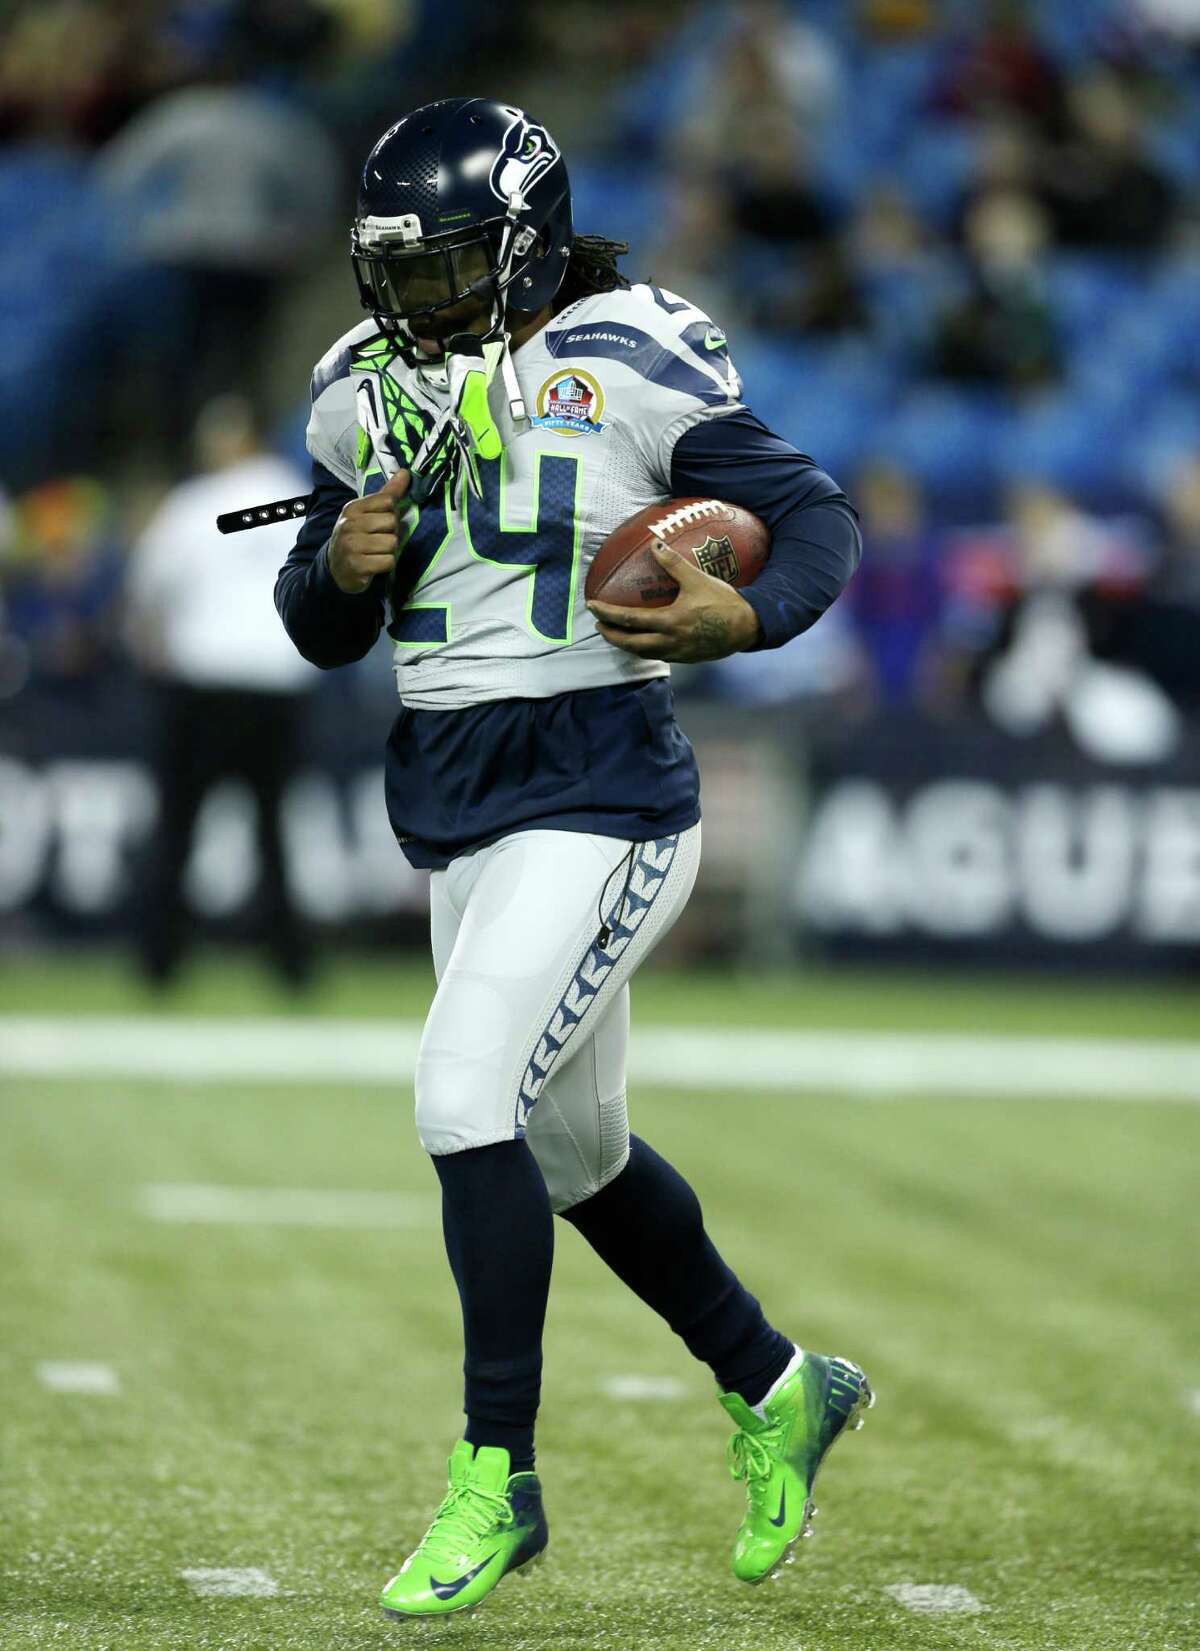 Seattle Seahawks running back Marshawn Lynch (24) warms up before an NFL football game against the Buffalo Bills on Sunday, Dec. 16, 2012, in Toronto.